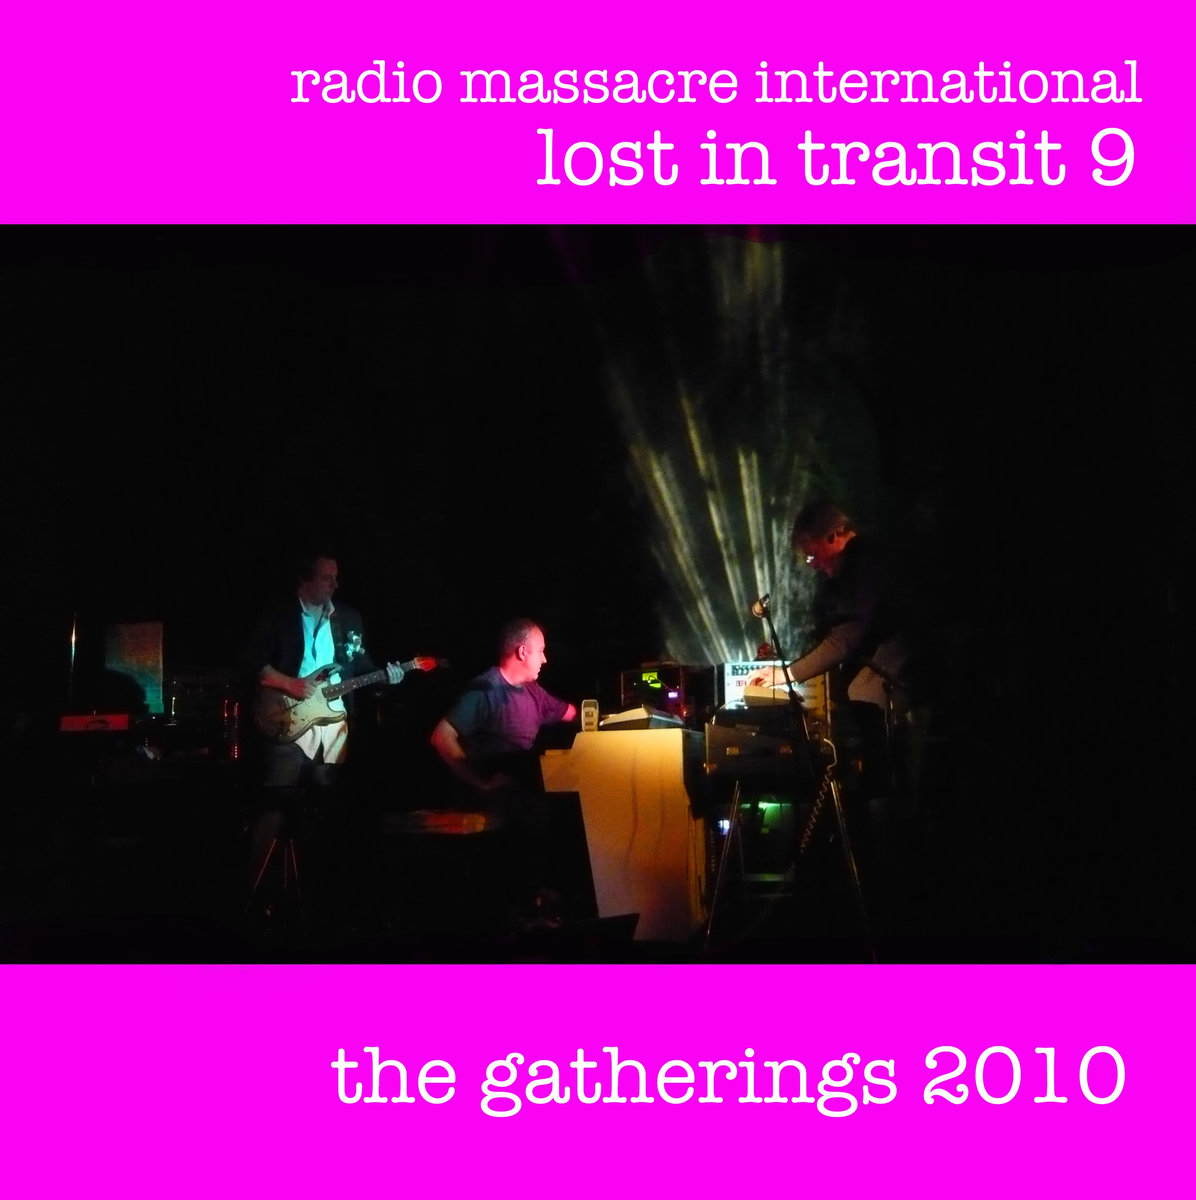 lost in transit 9: the gatherings 2010